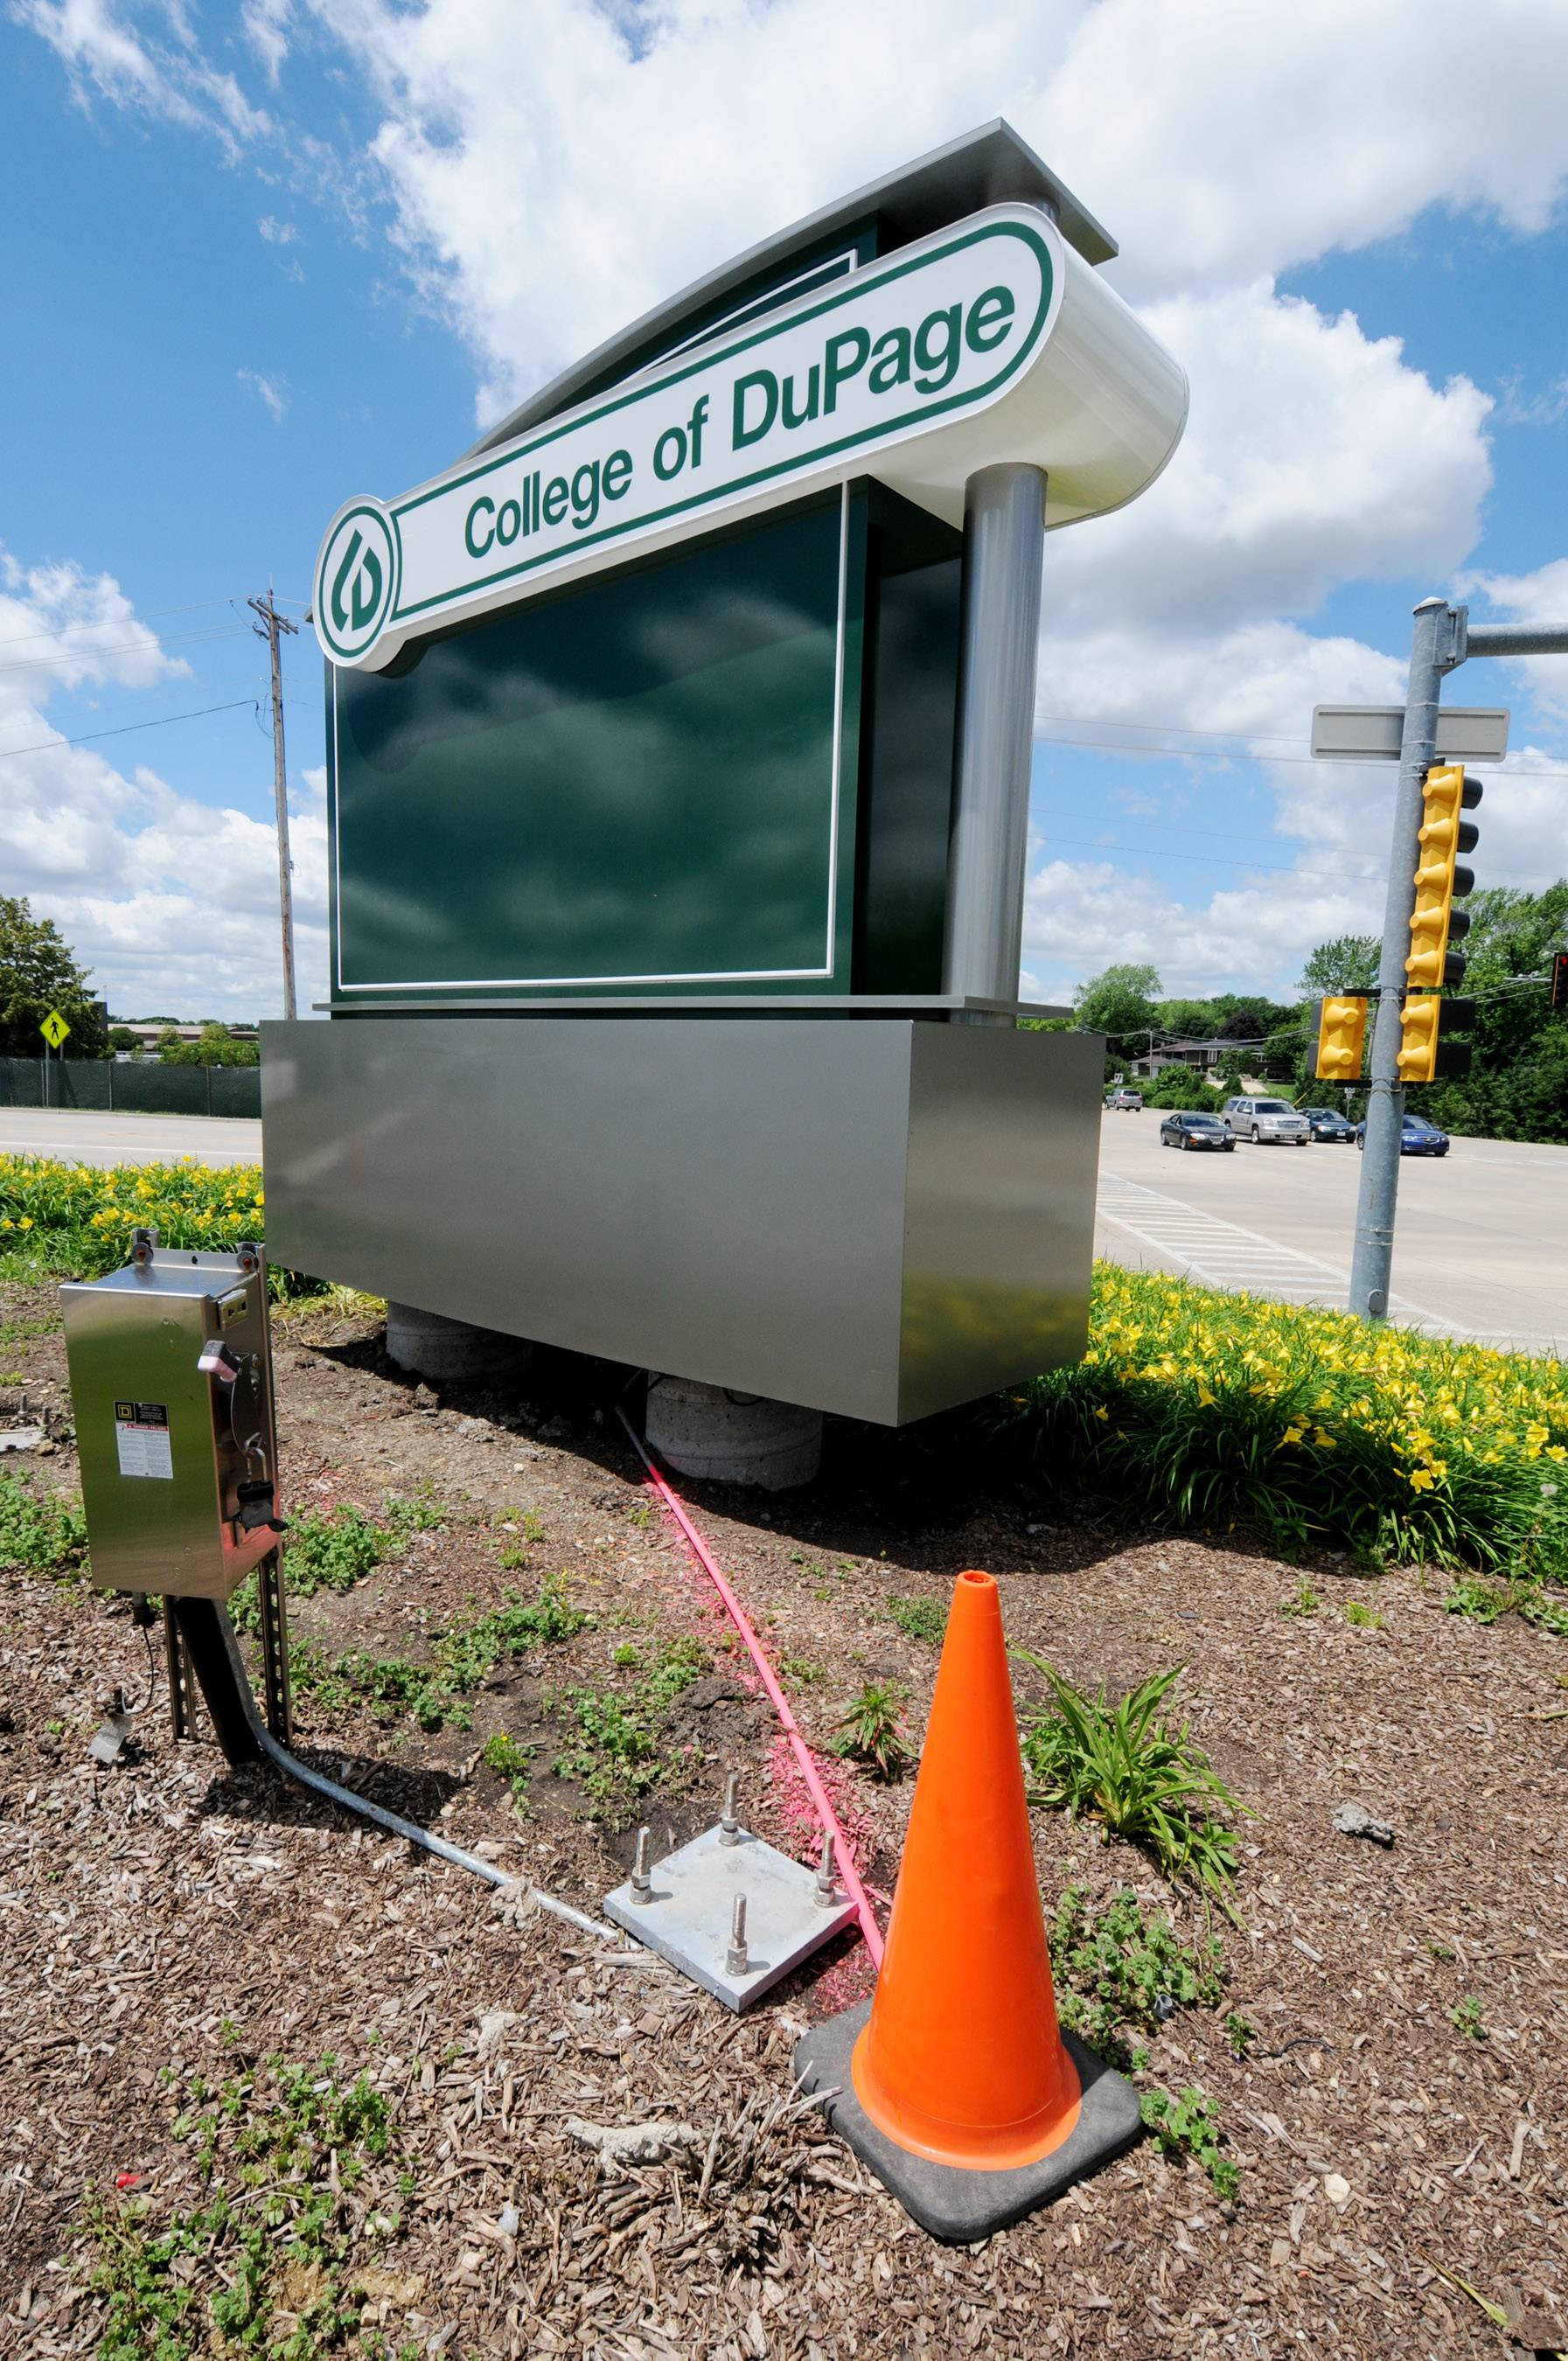 Federal lawsuits piling up at College of DuPage